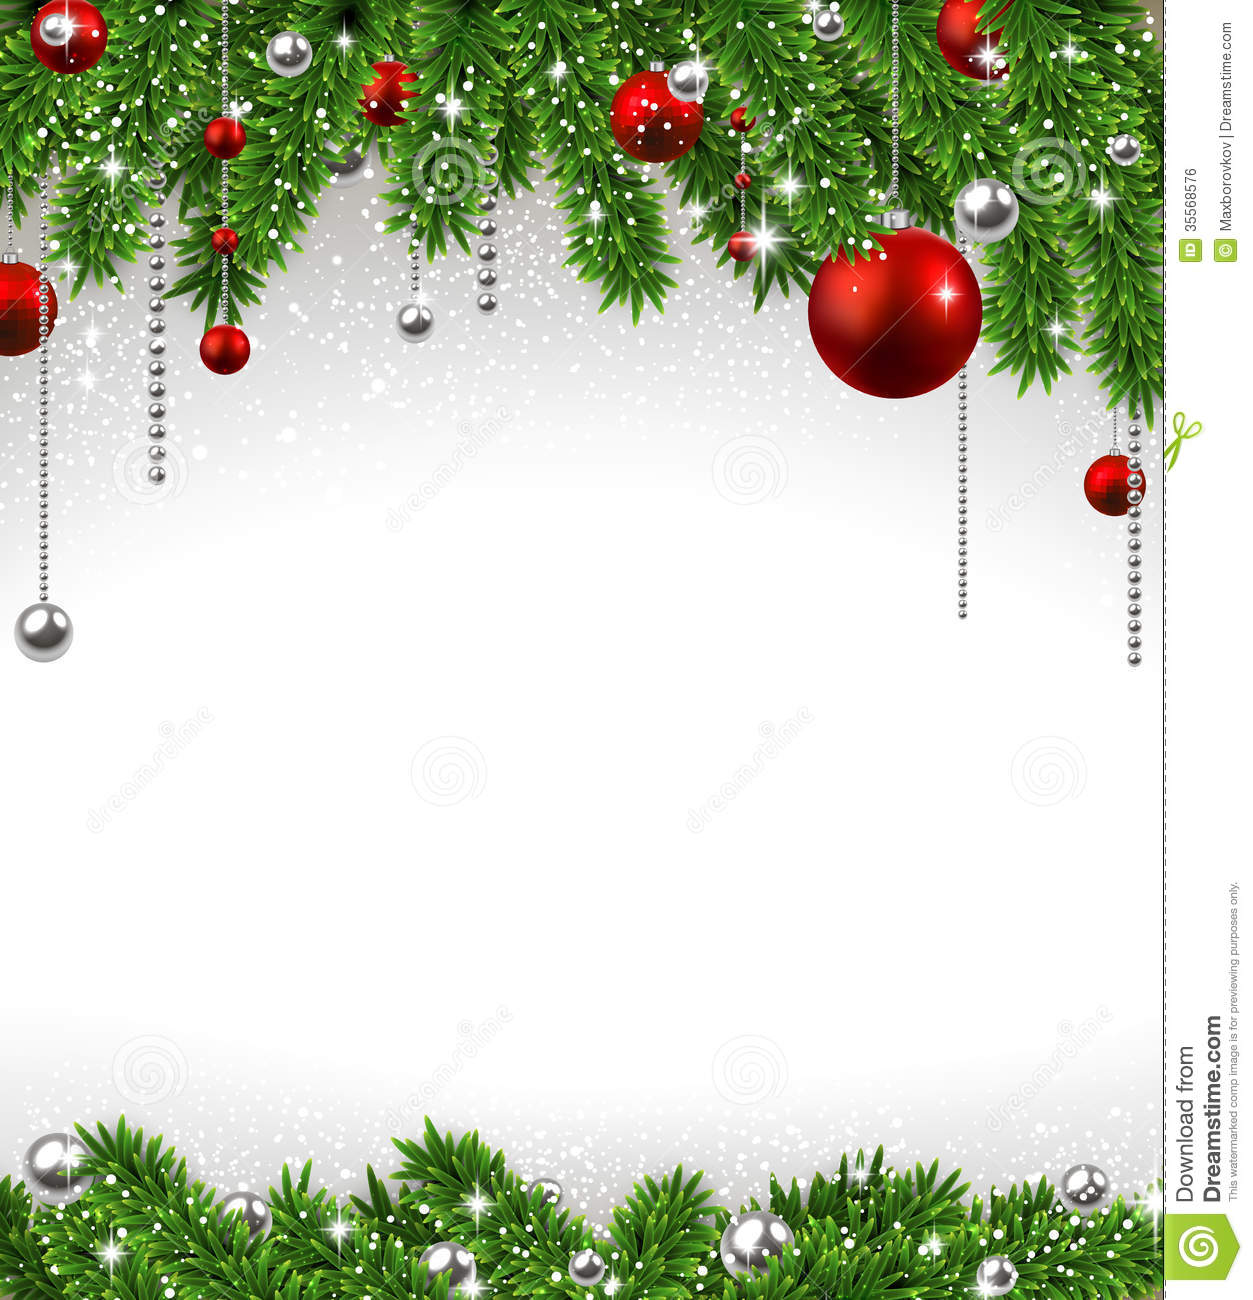 christmas background with fir branches and balls. stock vector